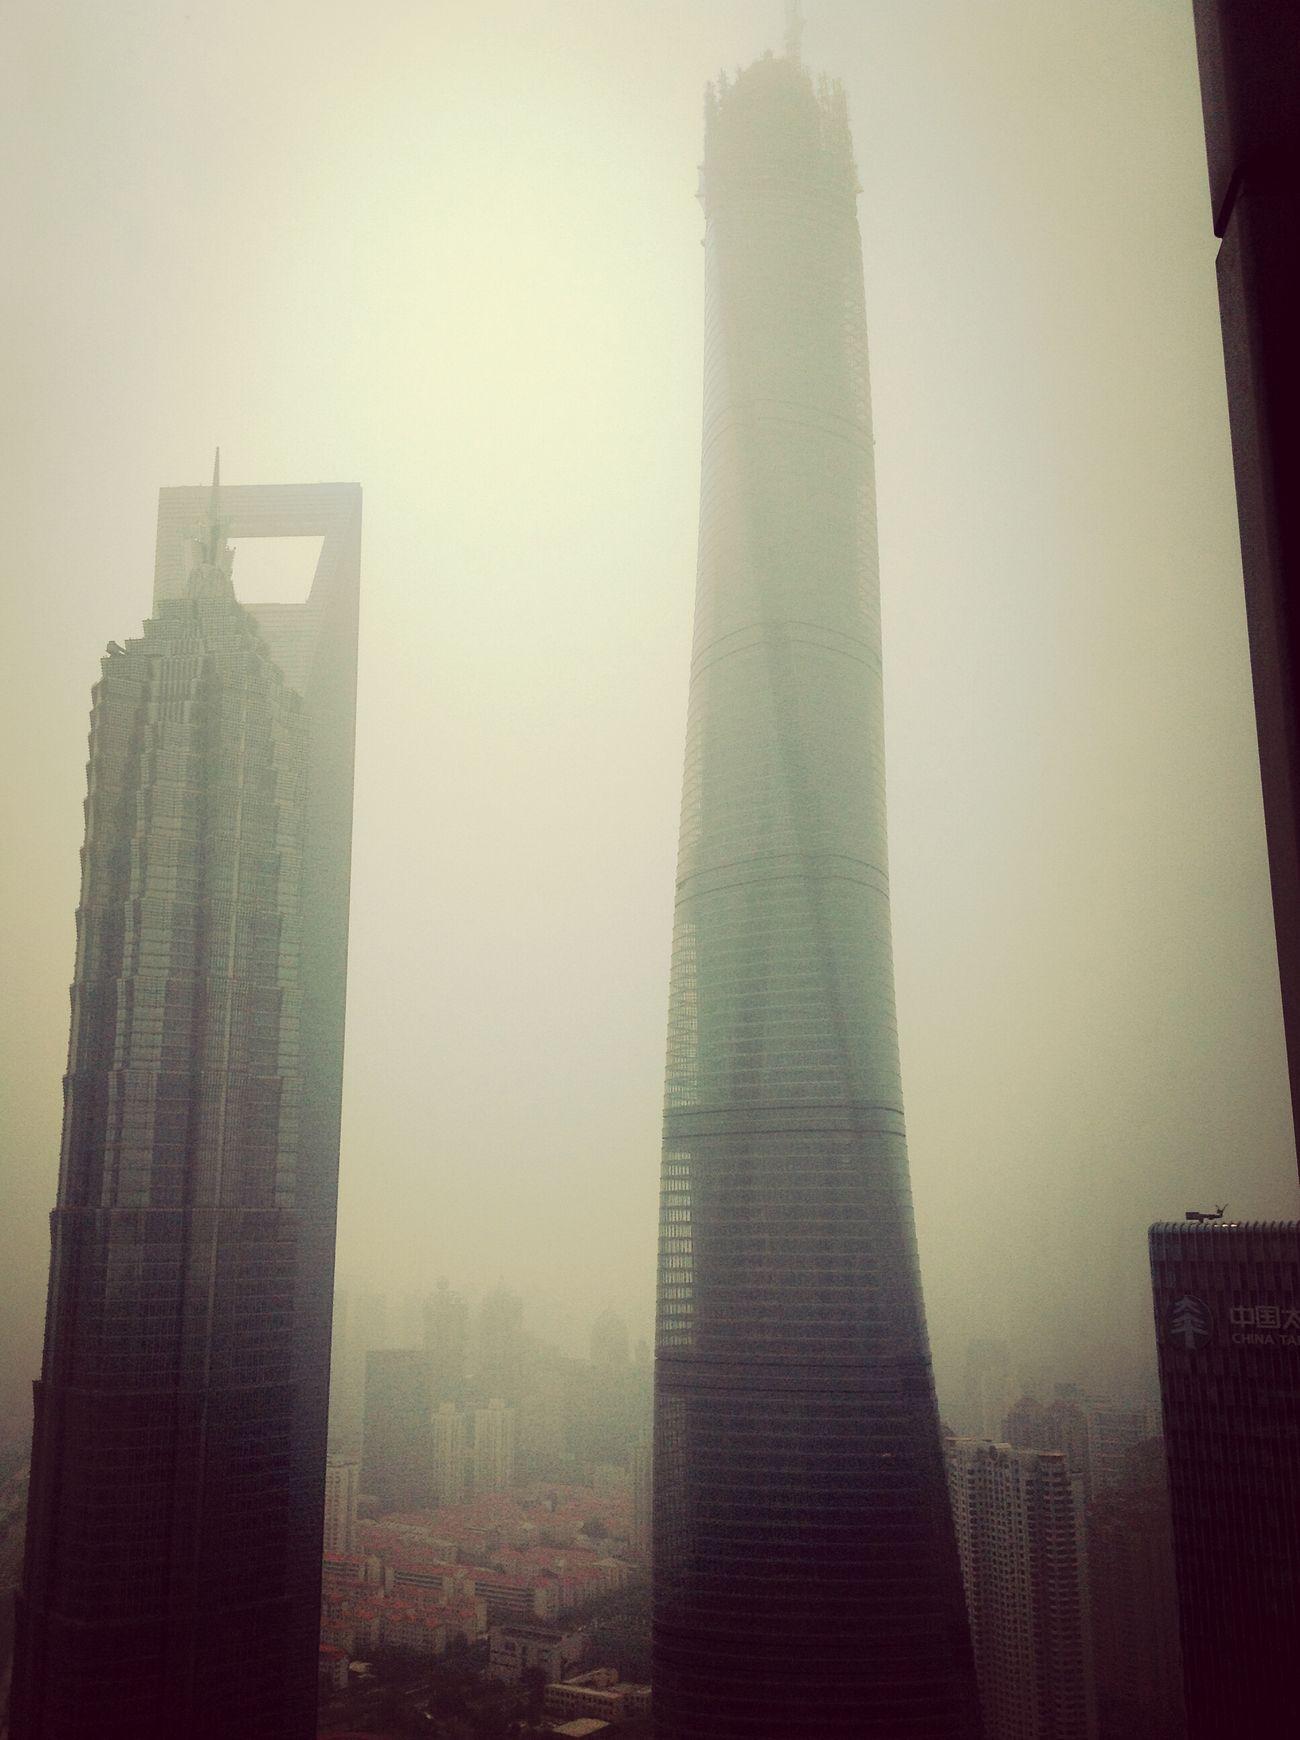 Smog in Shanghai Shanghai, China Smog Pollution In My World Shanghai Tower